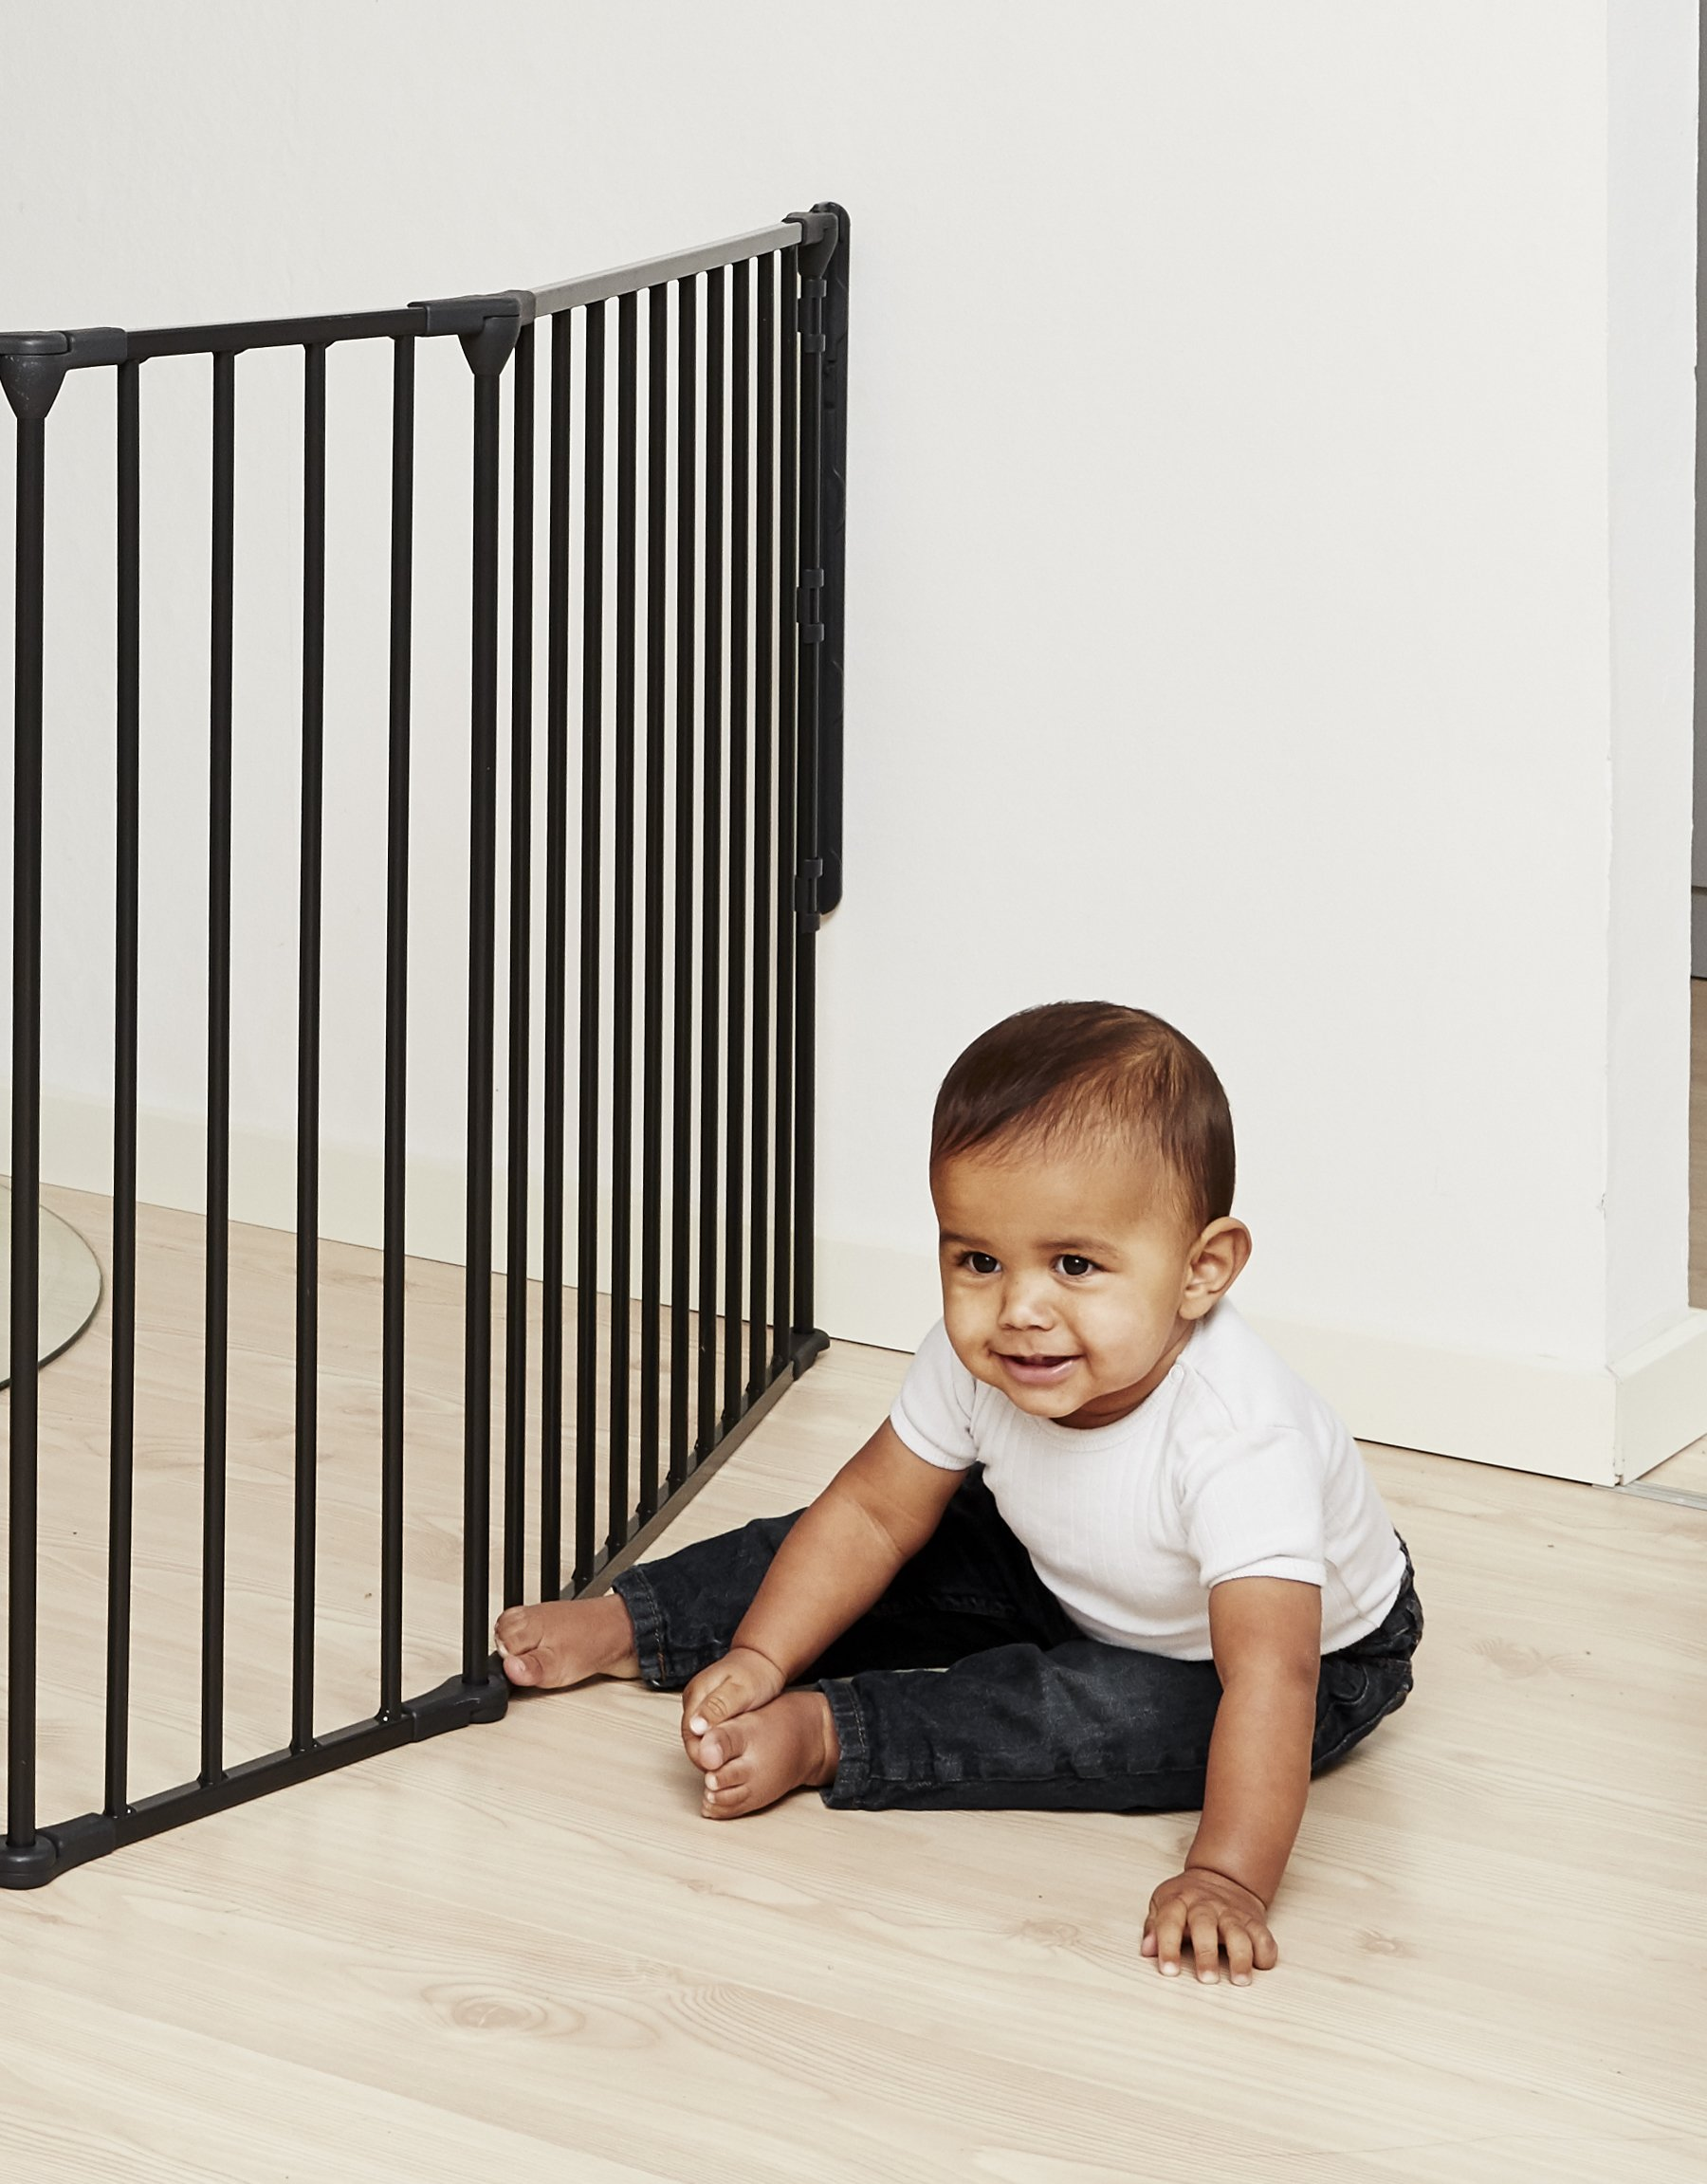 BabyDan Hearth Gate/Room Divider (Extra Large, 90-278cm, Anthracite)  Only configure system fulfilling newest european safety standard Multi purpose hearth gate and room divider There are 5 panels in total, 1 larger 72cm gate section panel, 2 larger 72cm panels and 2 smaller 33cm side panels. For shipping purposes, the 2 smaller side panels are connected by the interlocking pole 6